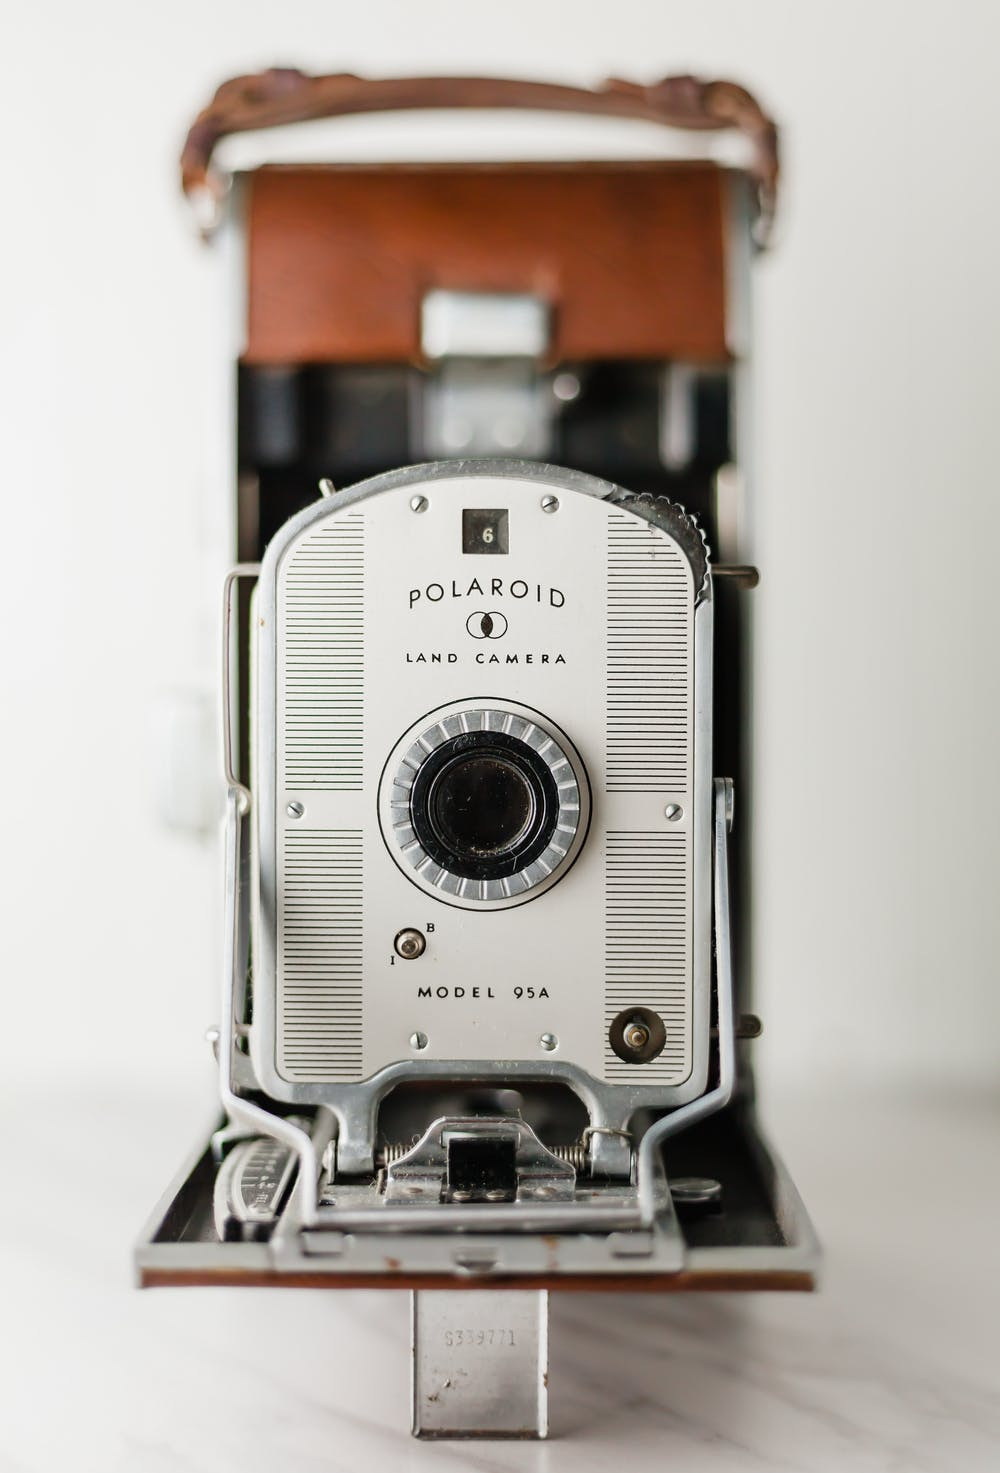 The Original Polaroid Camera Freed Users From Needing To Trek A Darkroom Develop Their Images Lindsay Moe Unsplash CC BY